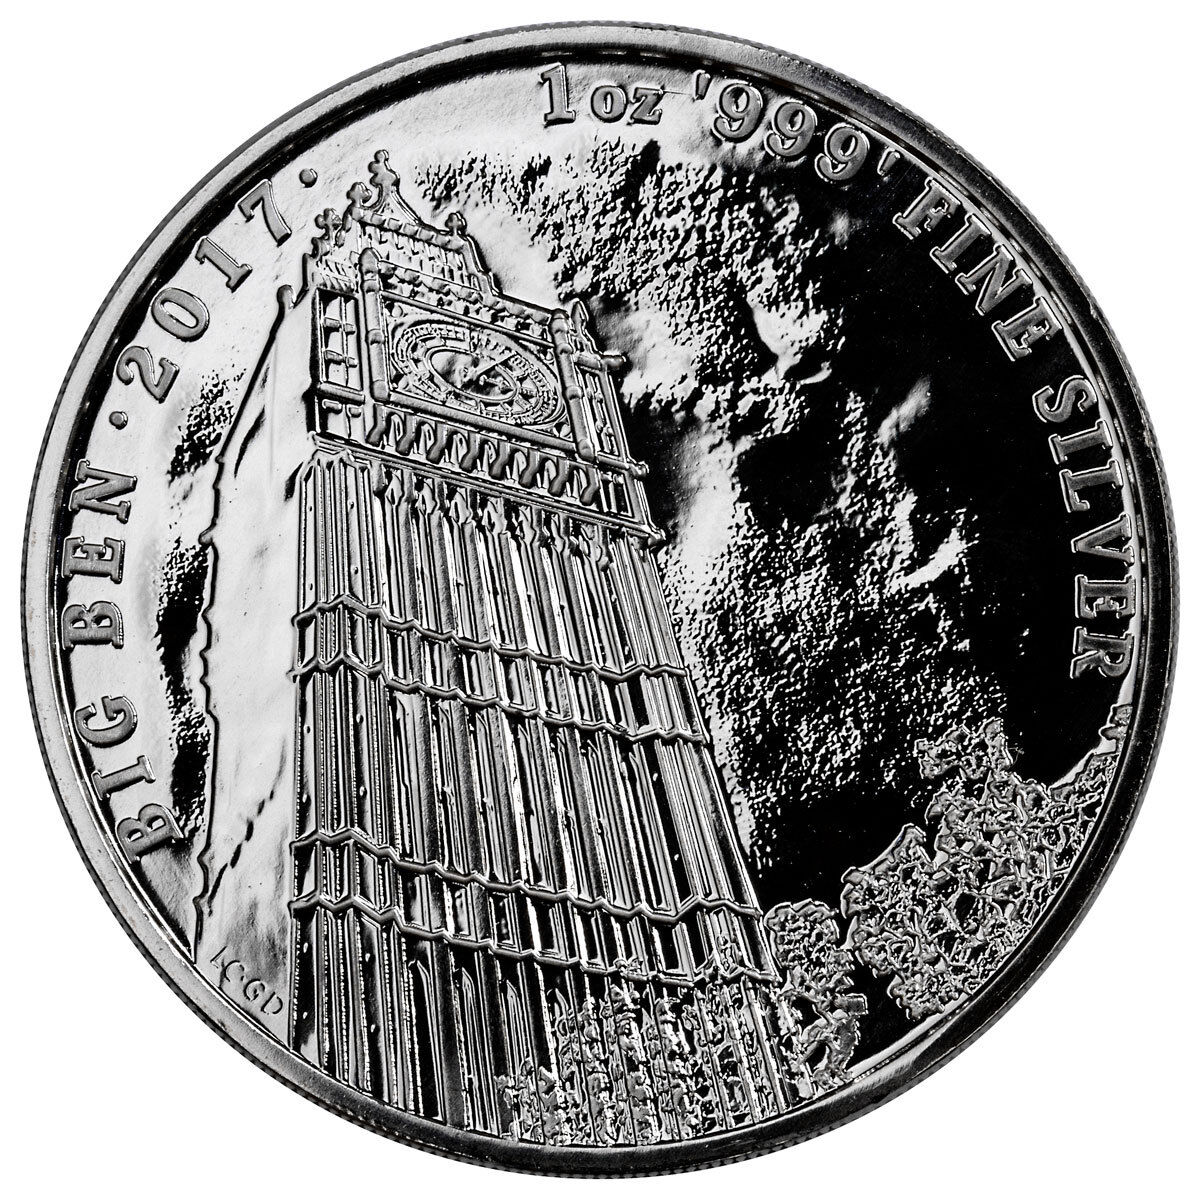 UK 2017 2 Pounds Landmarks of Britain Big Ben New Year 1 Oz Silver Coin